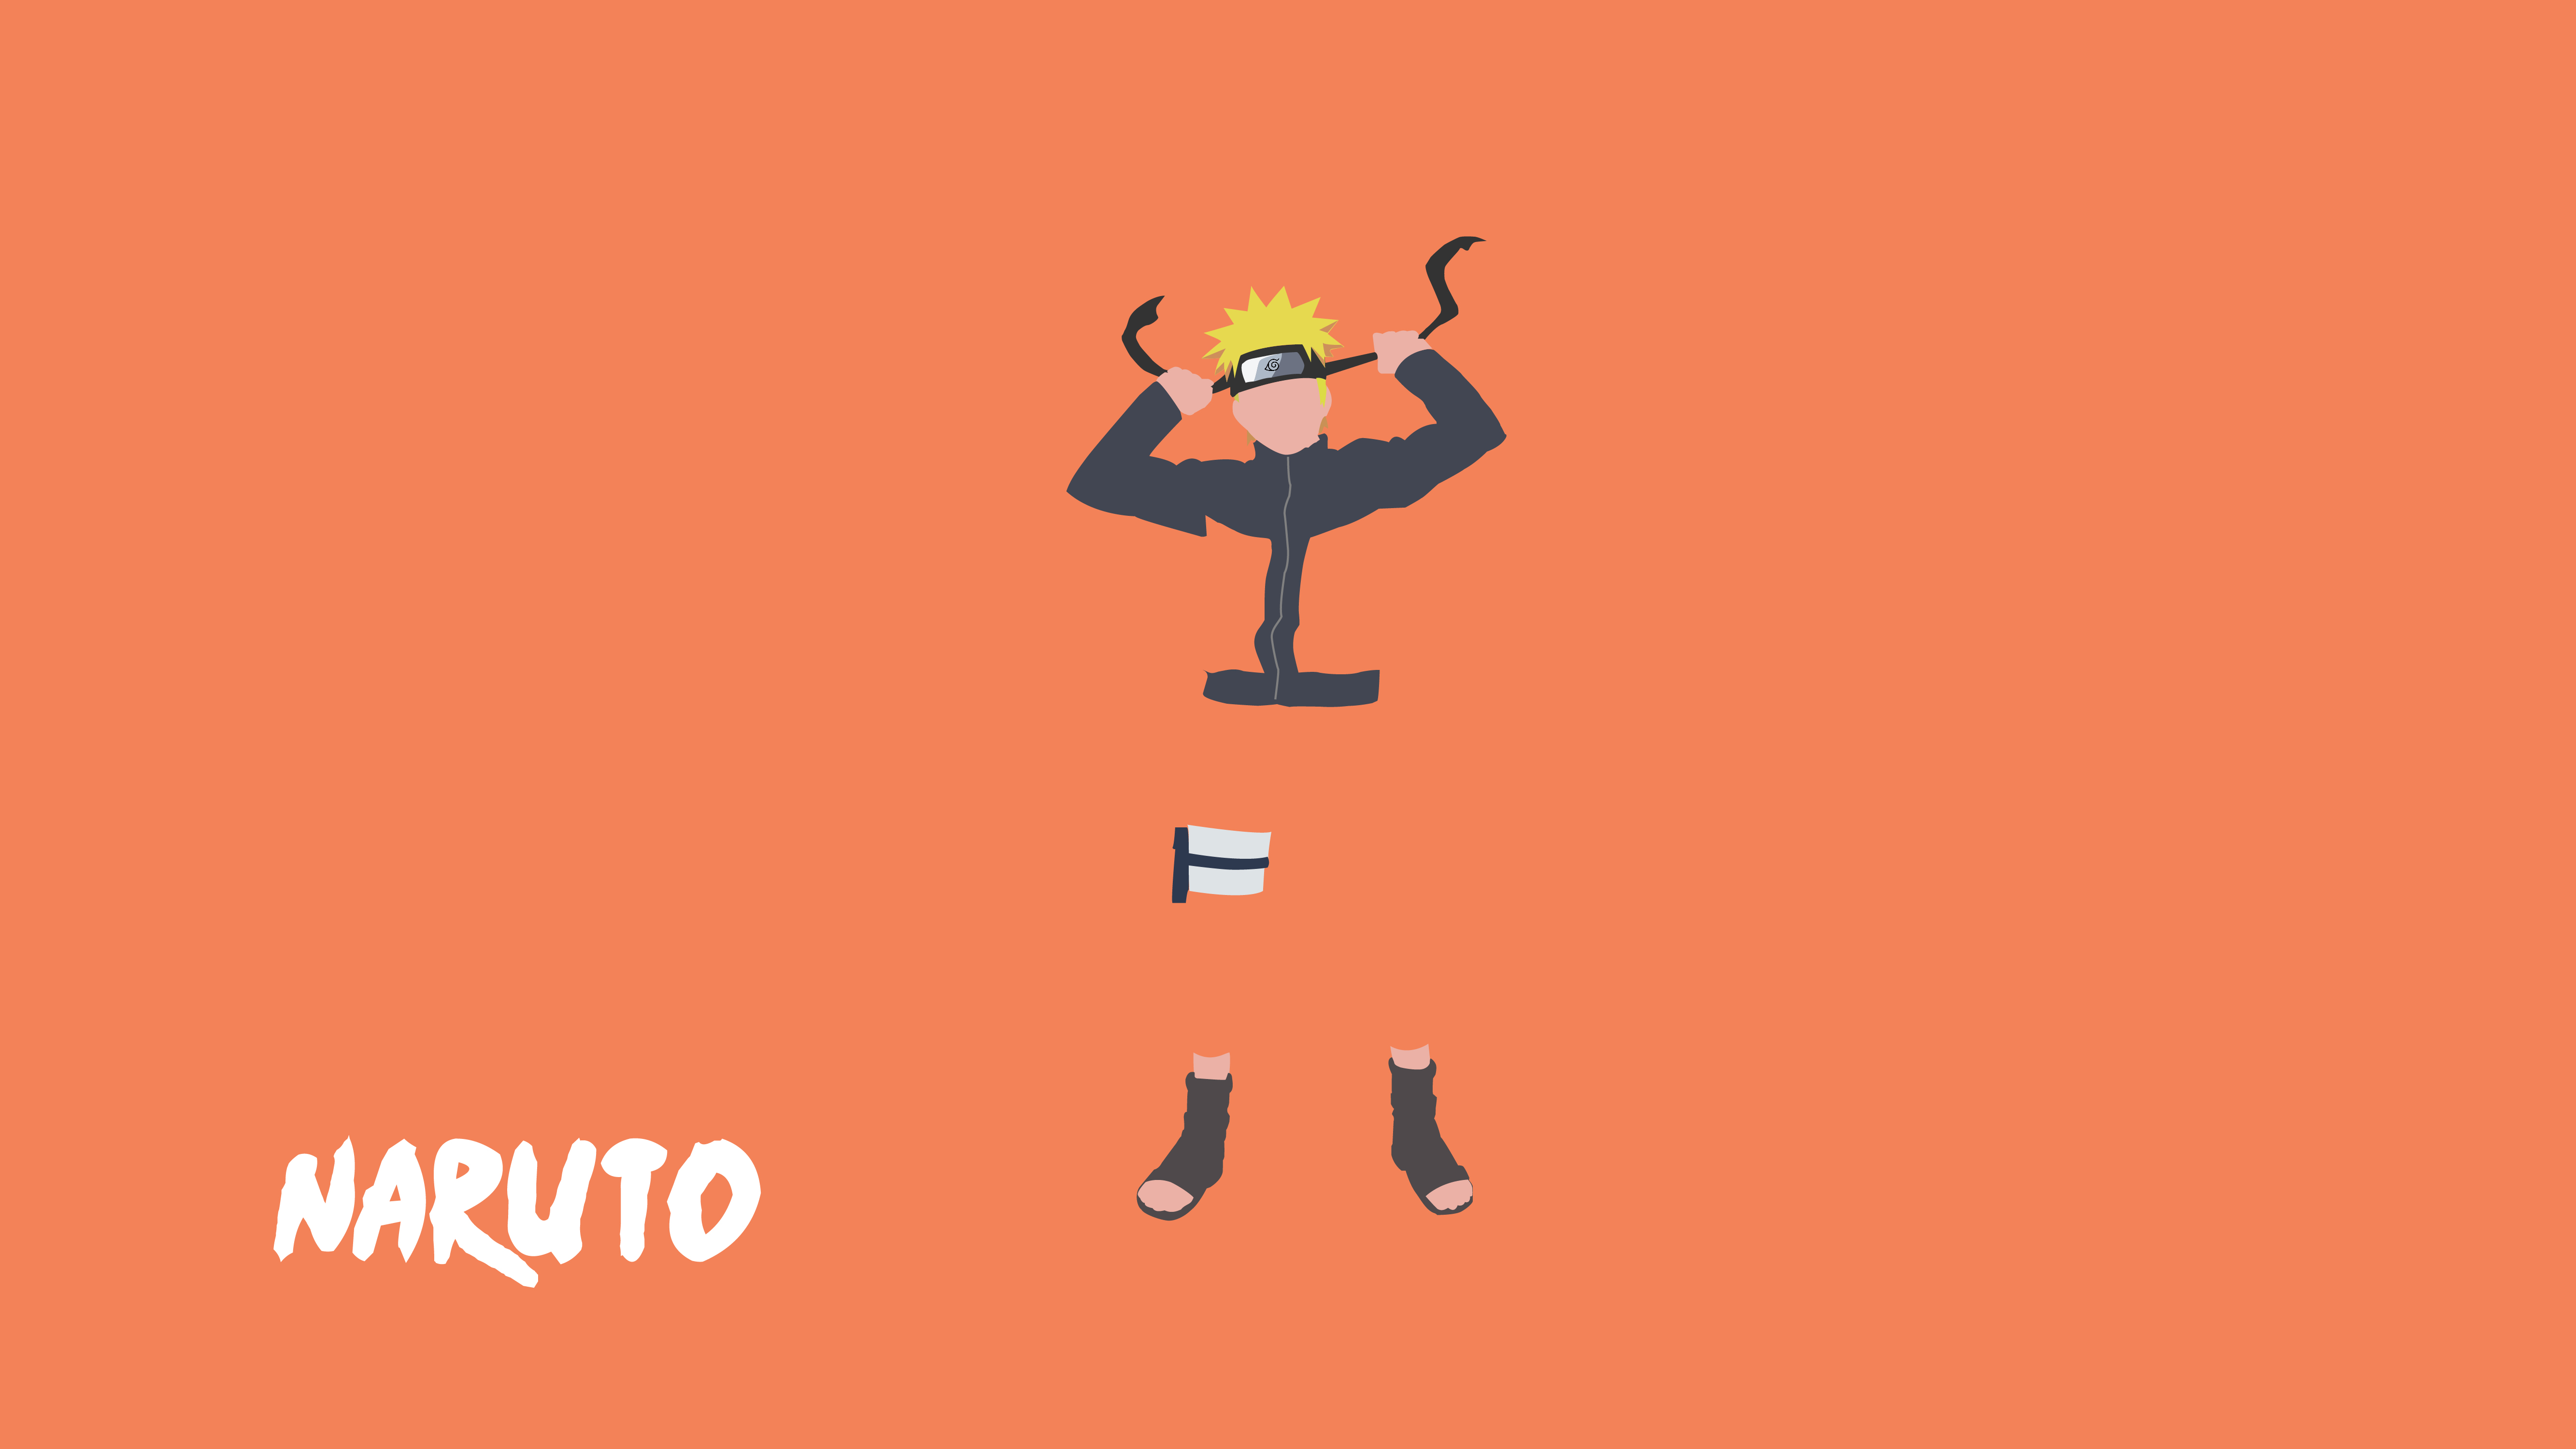 Most Inspiring Wallpaper Naruto Minimalistic - narutoflat_by_mehphistro-d8538o2  Best Photo Reference_711857.jpg